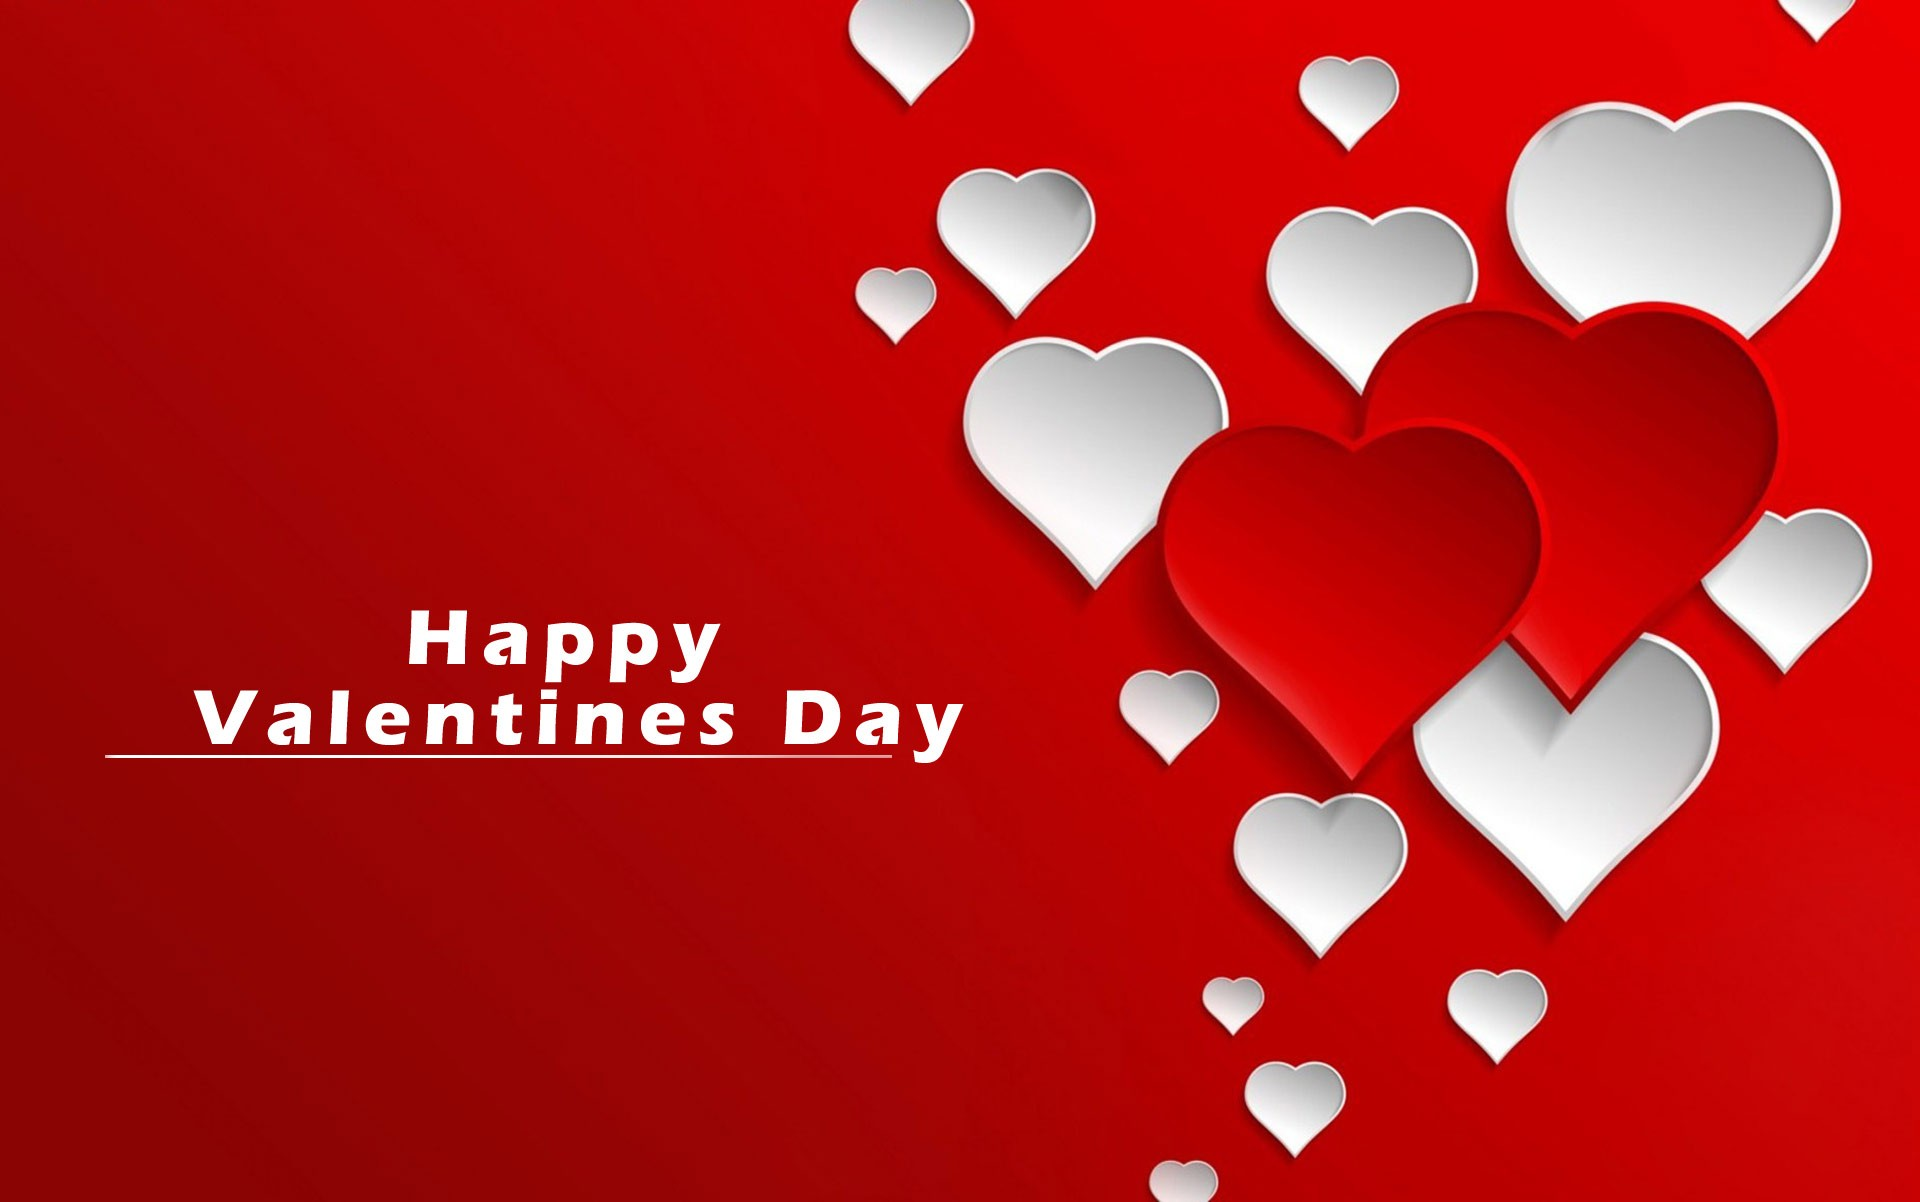 happy valentines day 2018 wallpapers wallpapersafarihappy valentine greetings cards graphics wallpapers hd 1920x1202